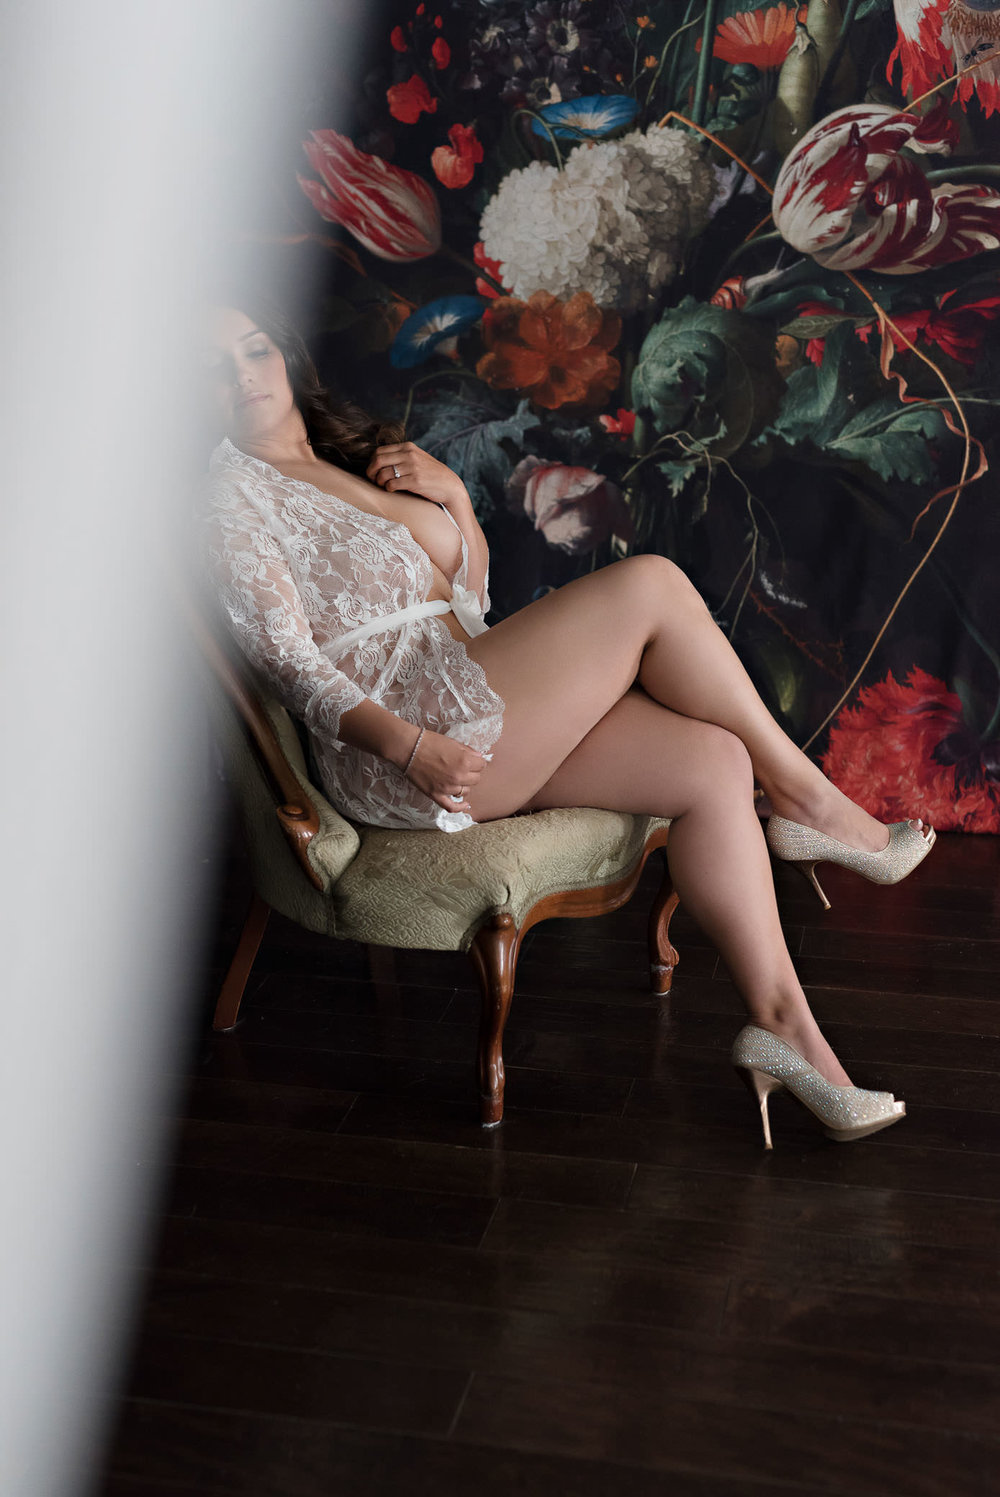 Bridal boudoir photo in white lace robe